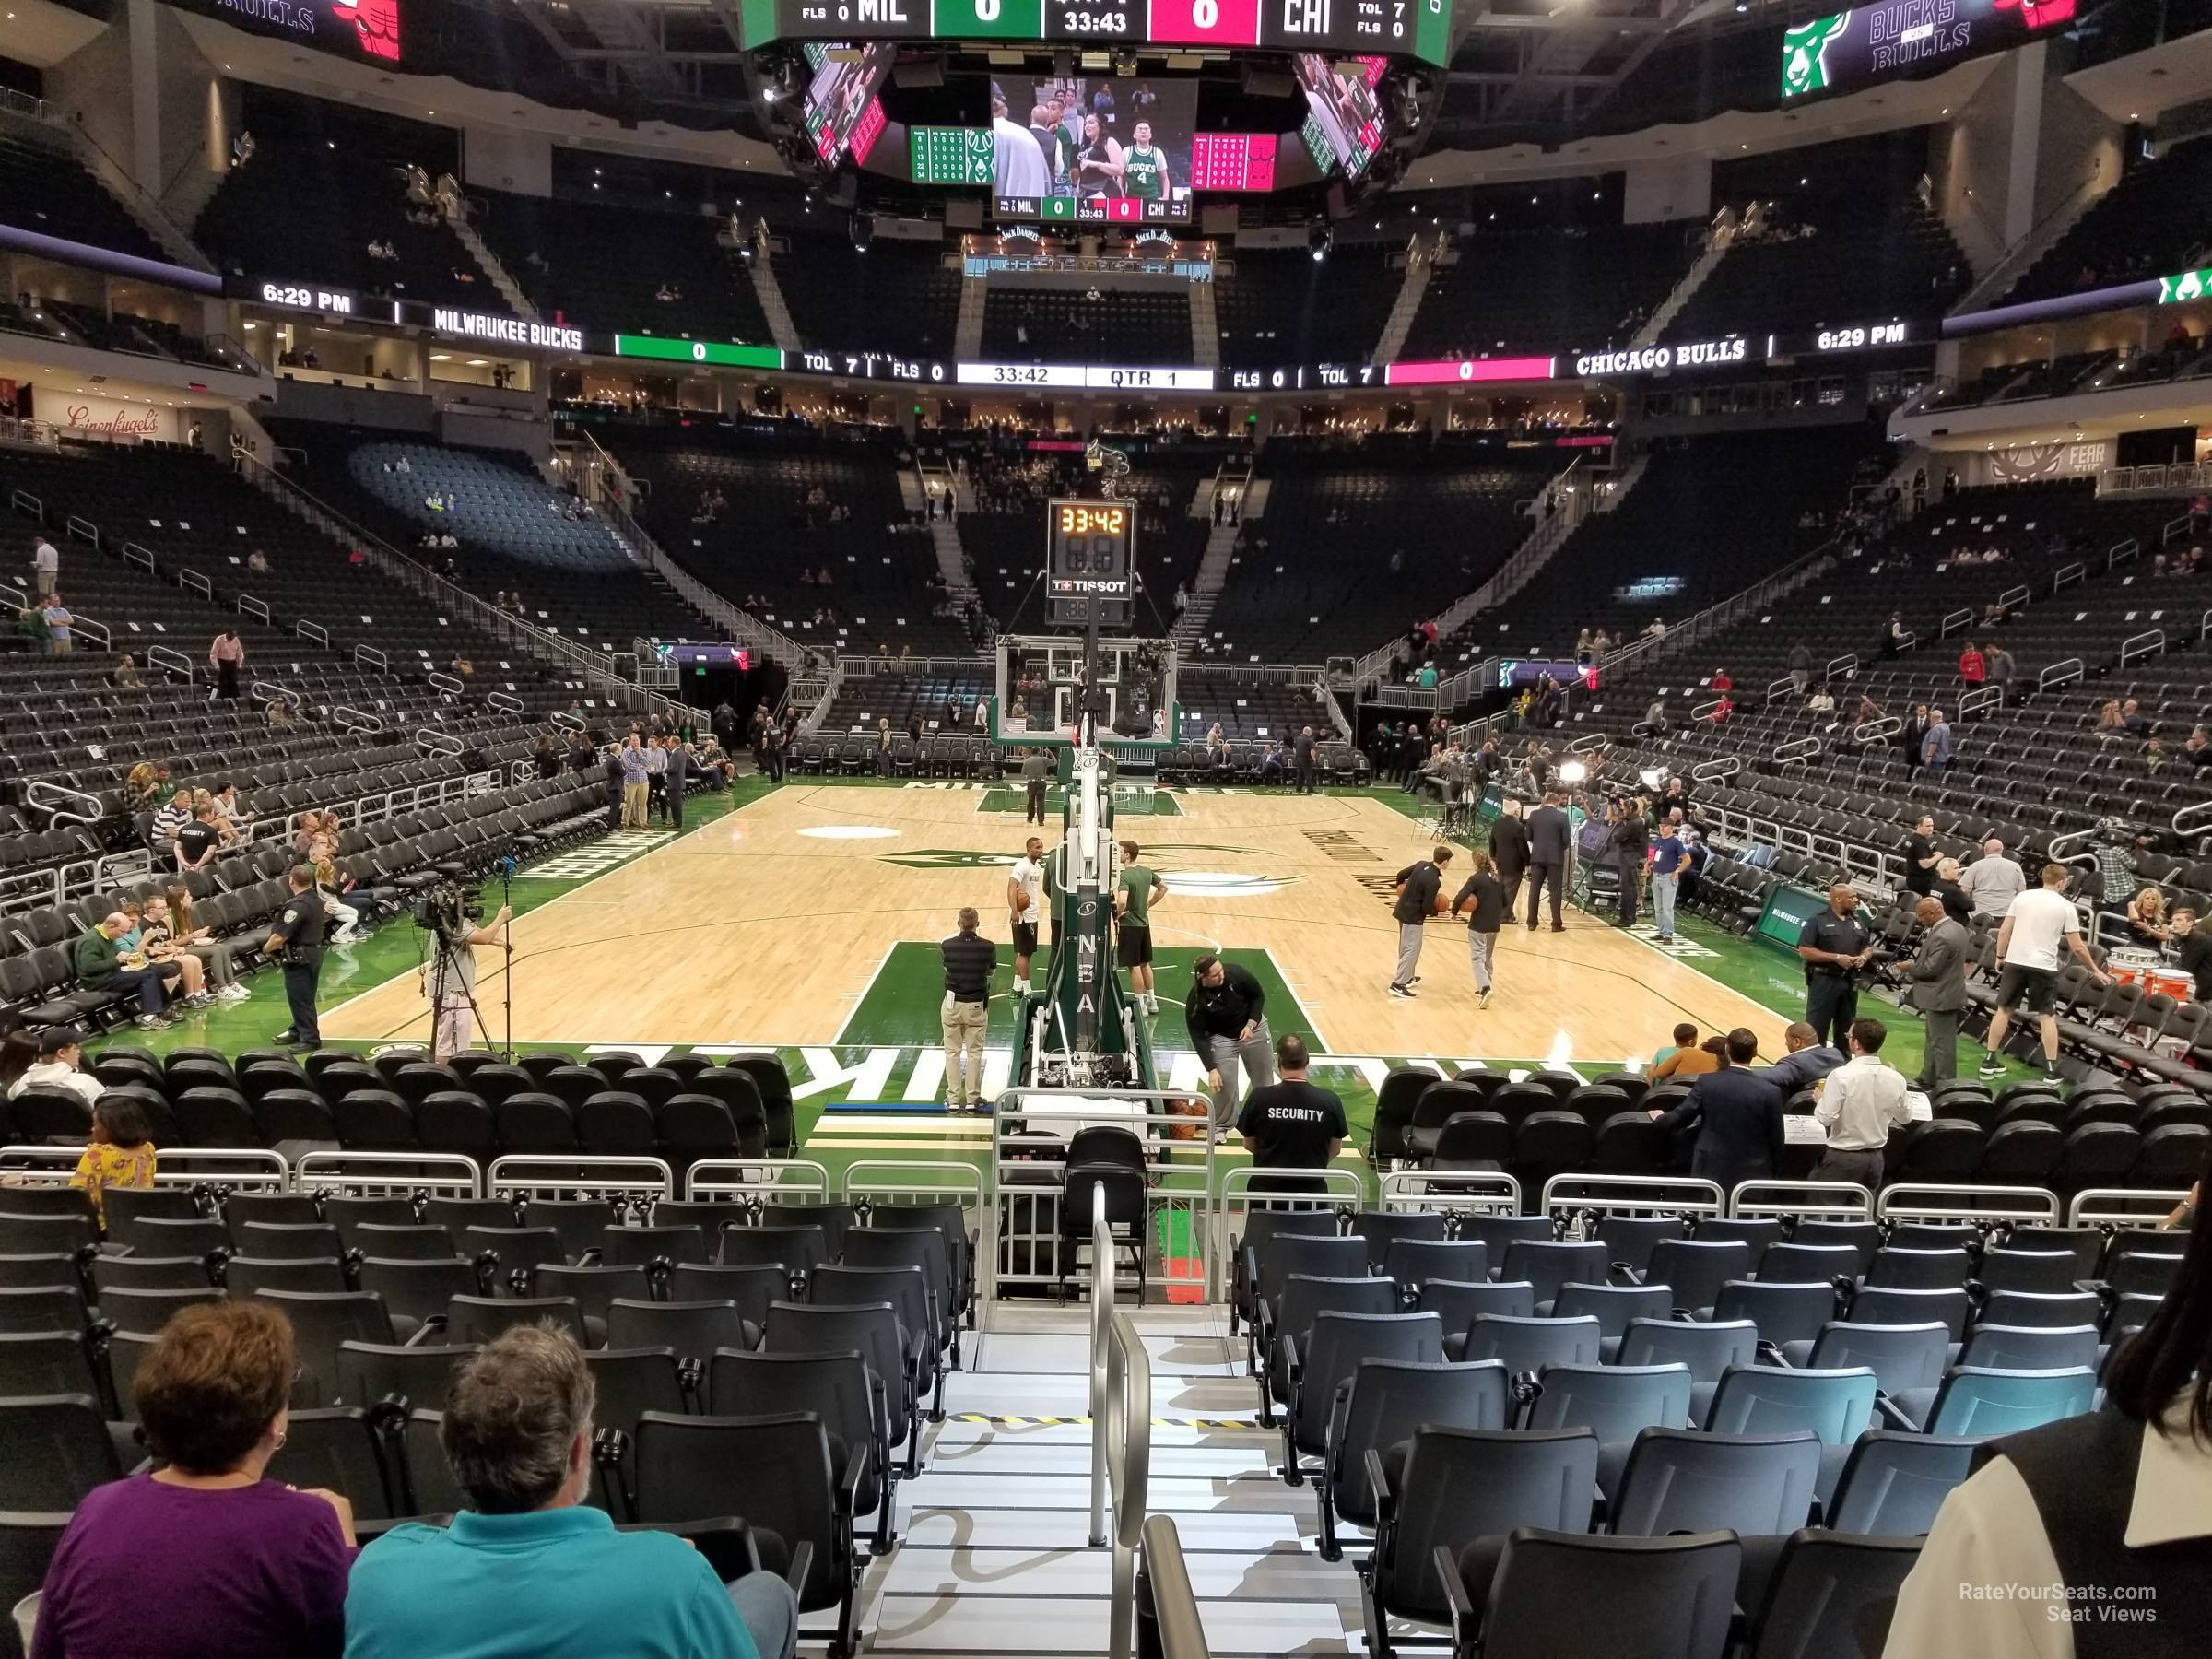 Section 122 seat view